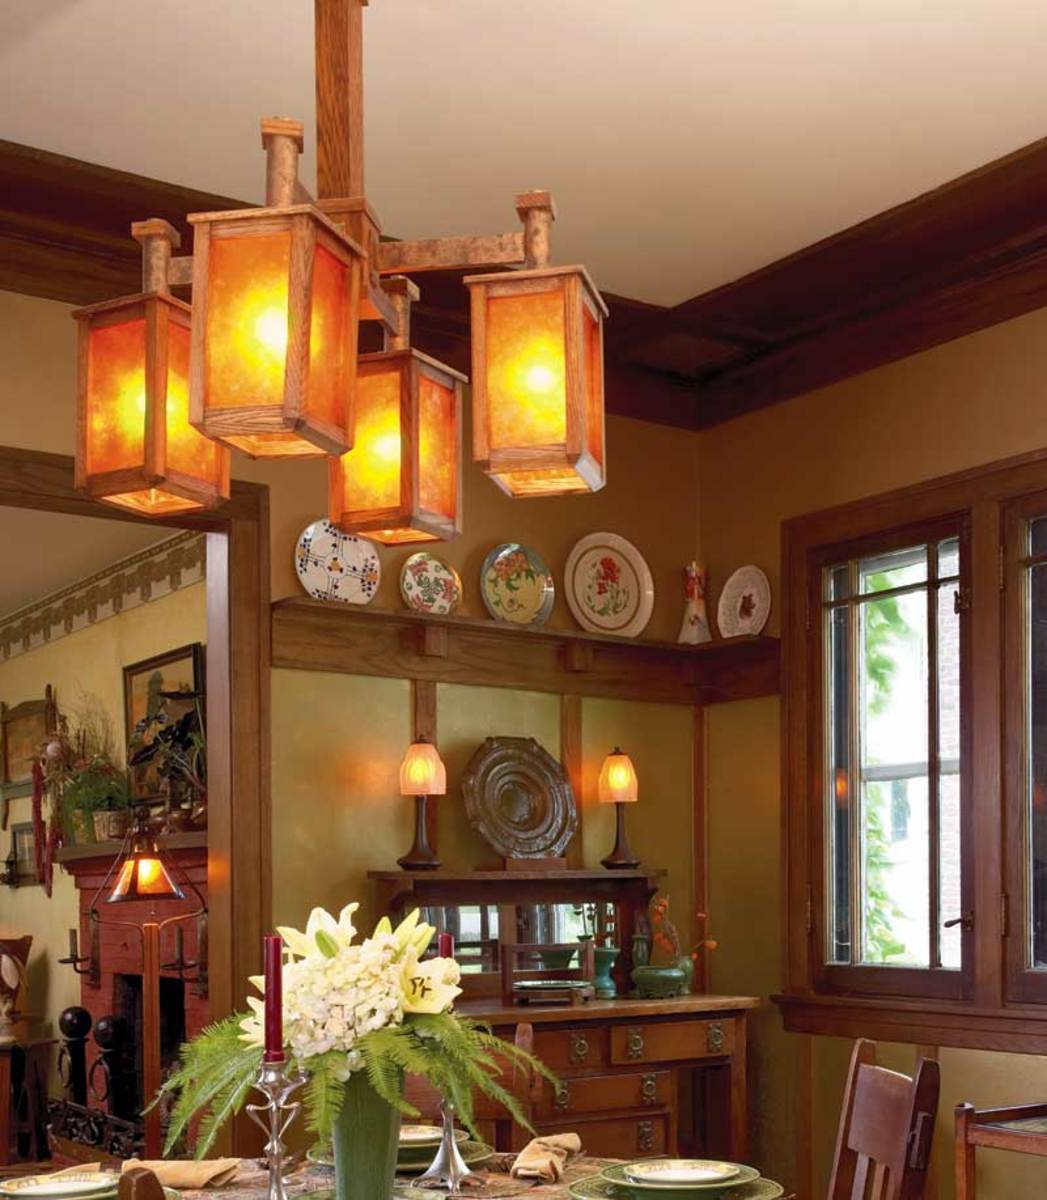 chandelier was handcrafted by Gustav Stickley's grandson